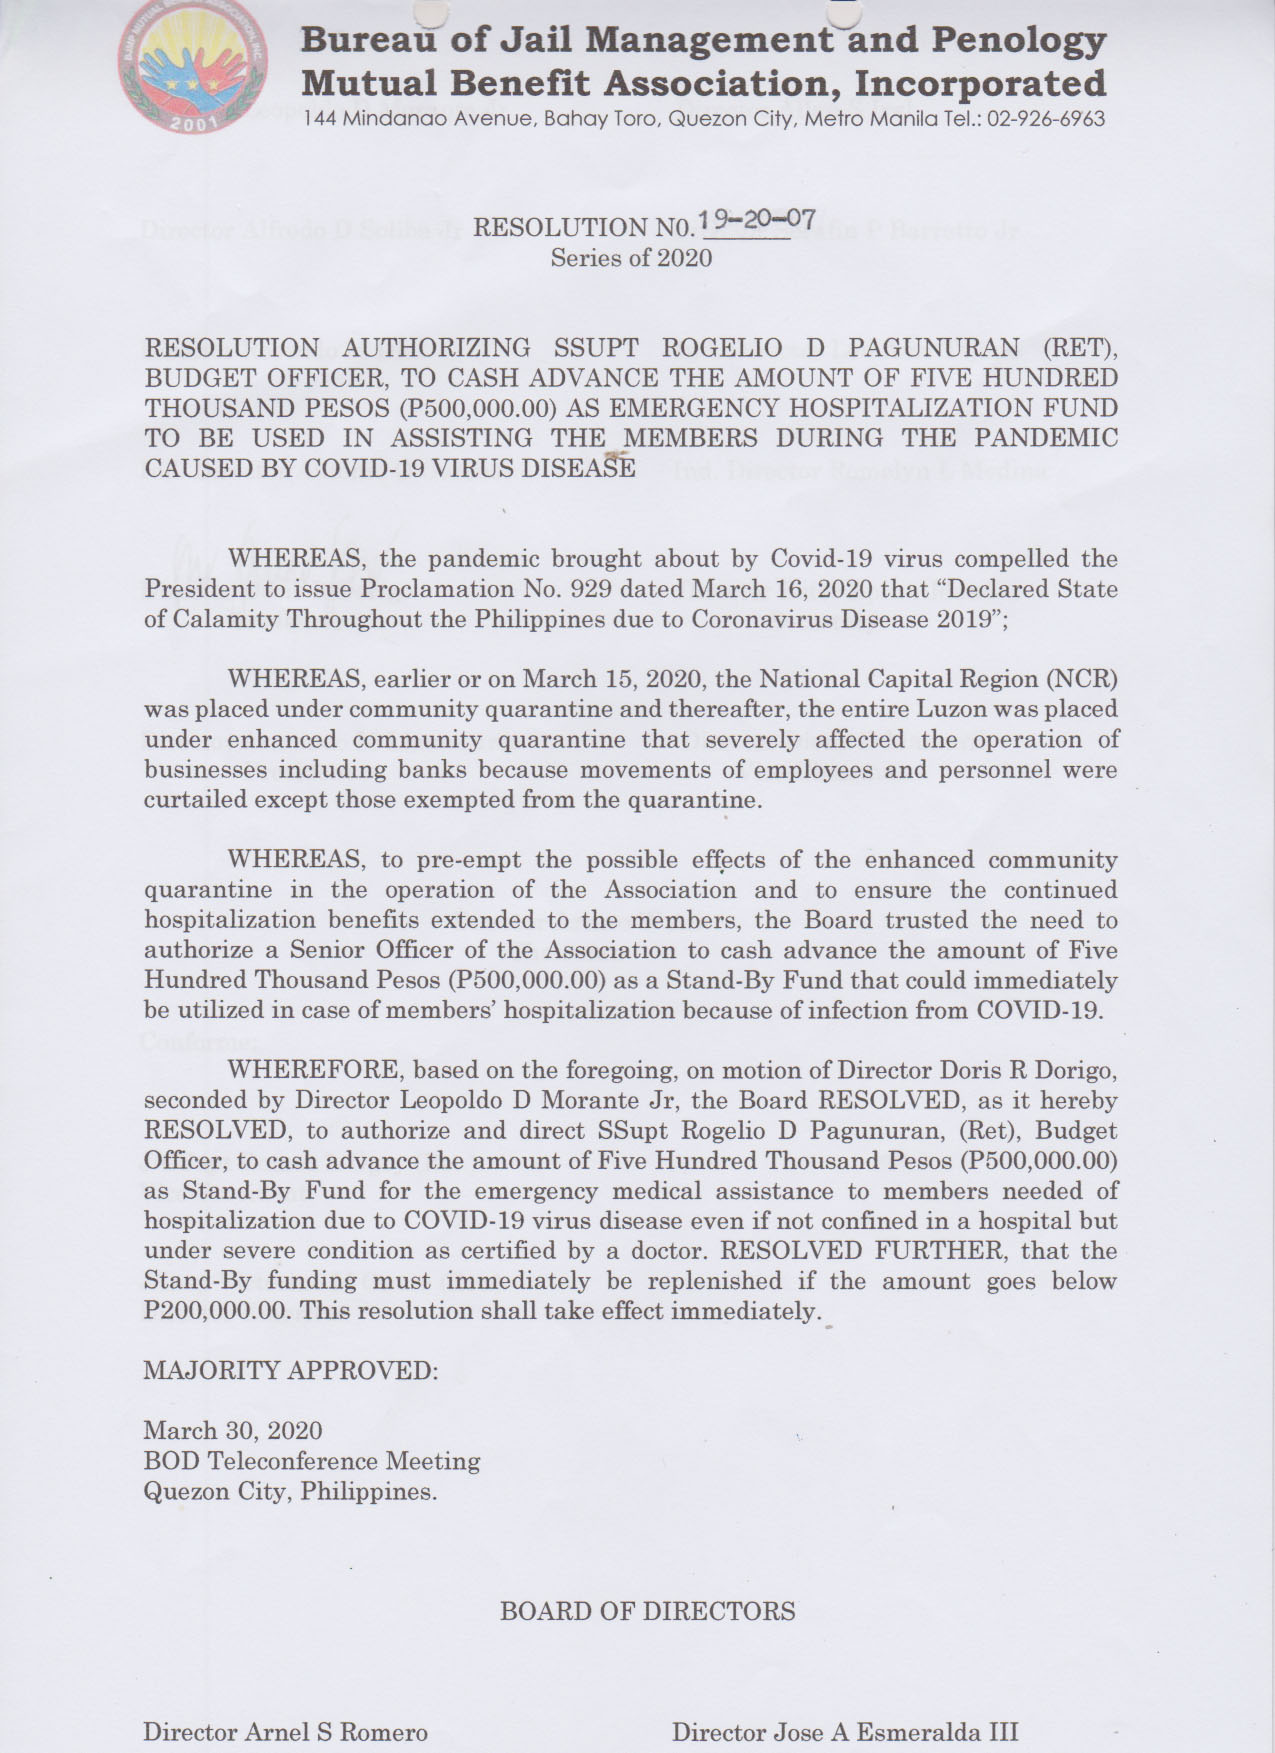 RESOLUTION NO. 19-20-07.jpg